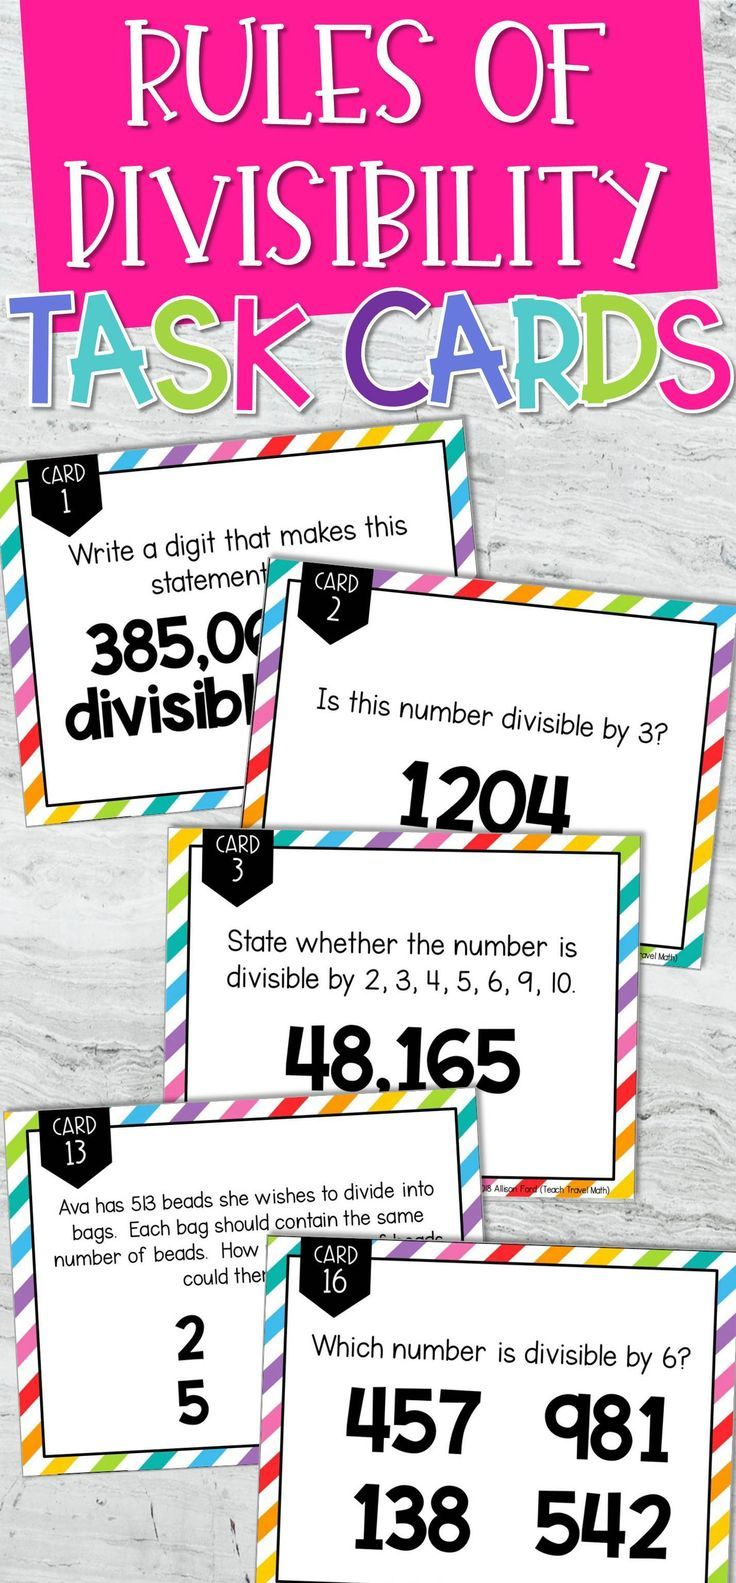 Rules Of Divisibility Task Cards Math Games Task Cards Math Games Middle School Upper Elementary Math